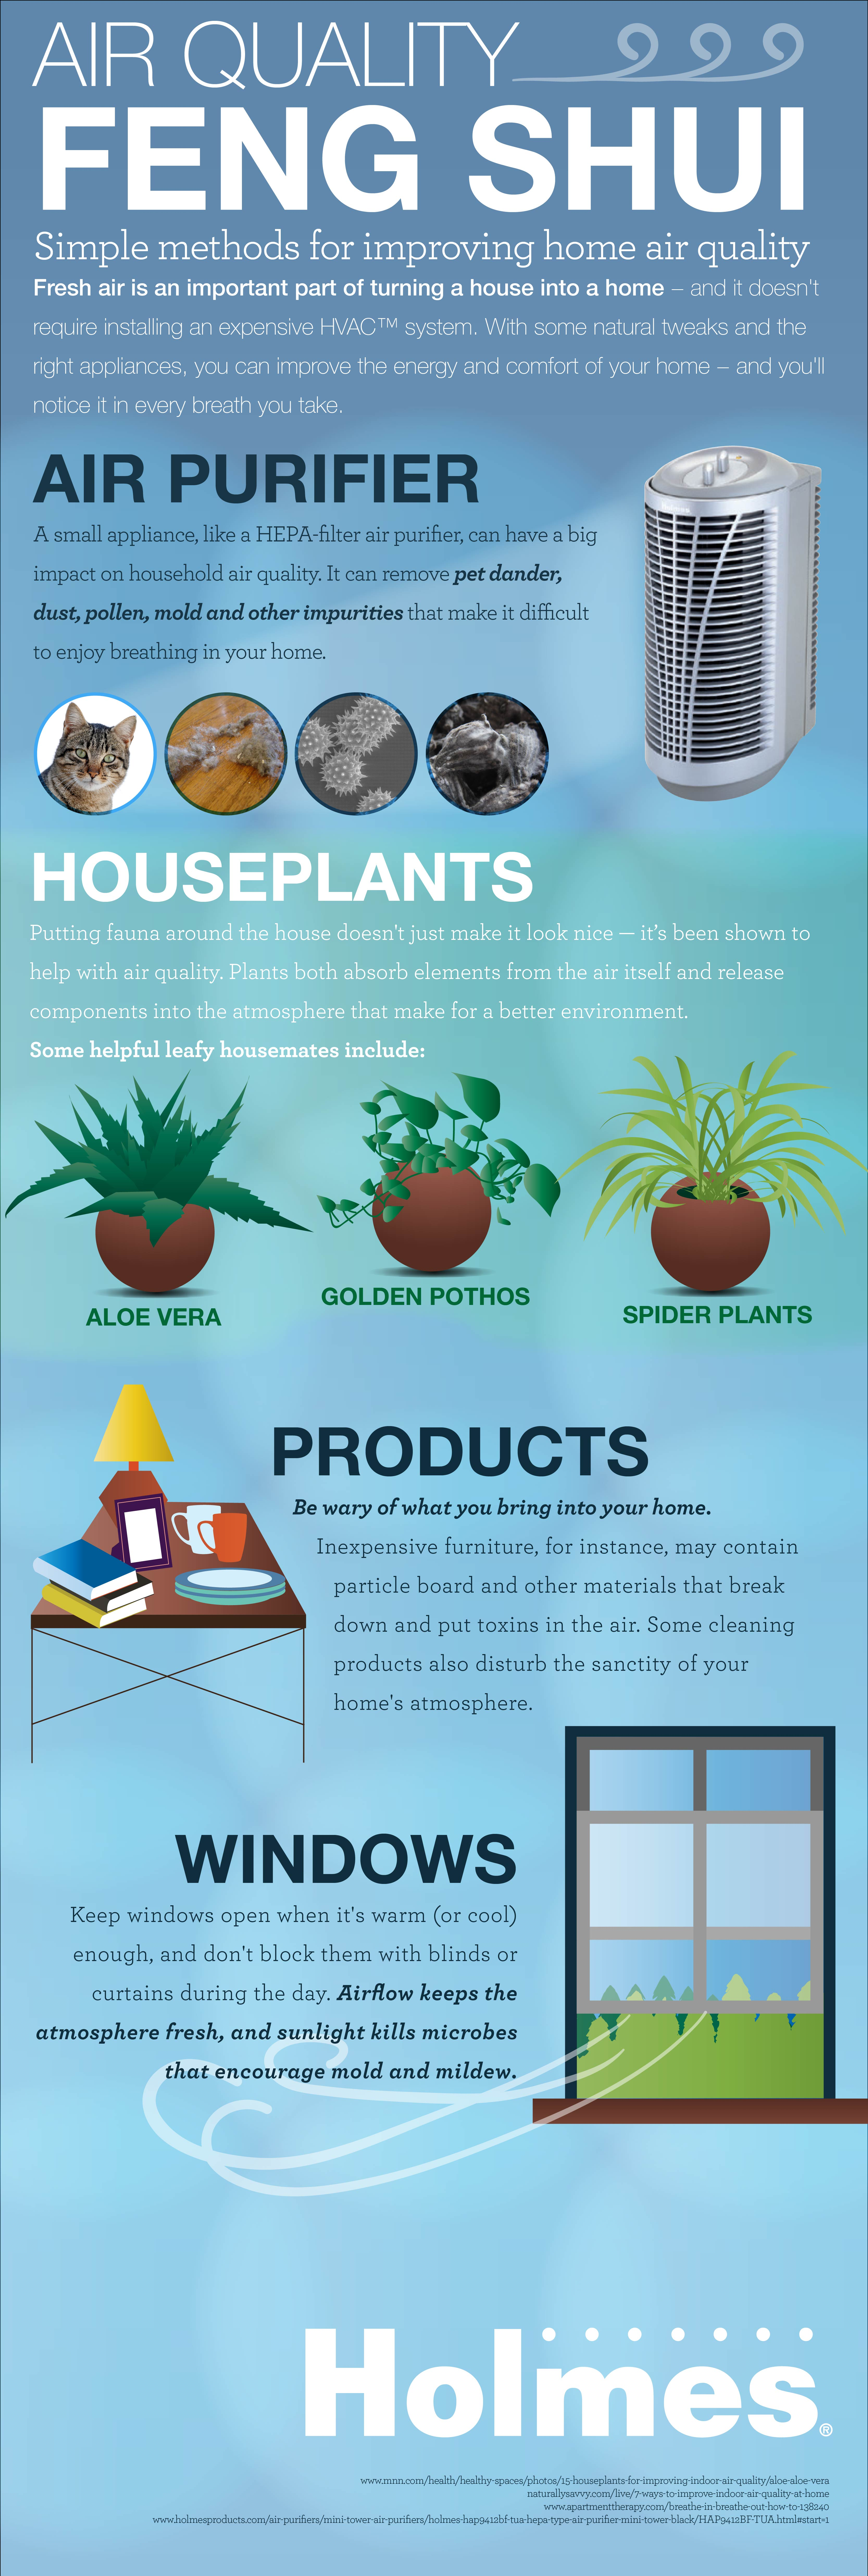 infographic feng shui. You Let Into Your Home. Old, Secondhand Furniture May Contain Materials That Could Emit Toxins If They Break. Cleaning Products Can Also Release Infographic Feng Shui